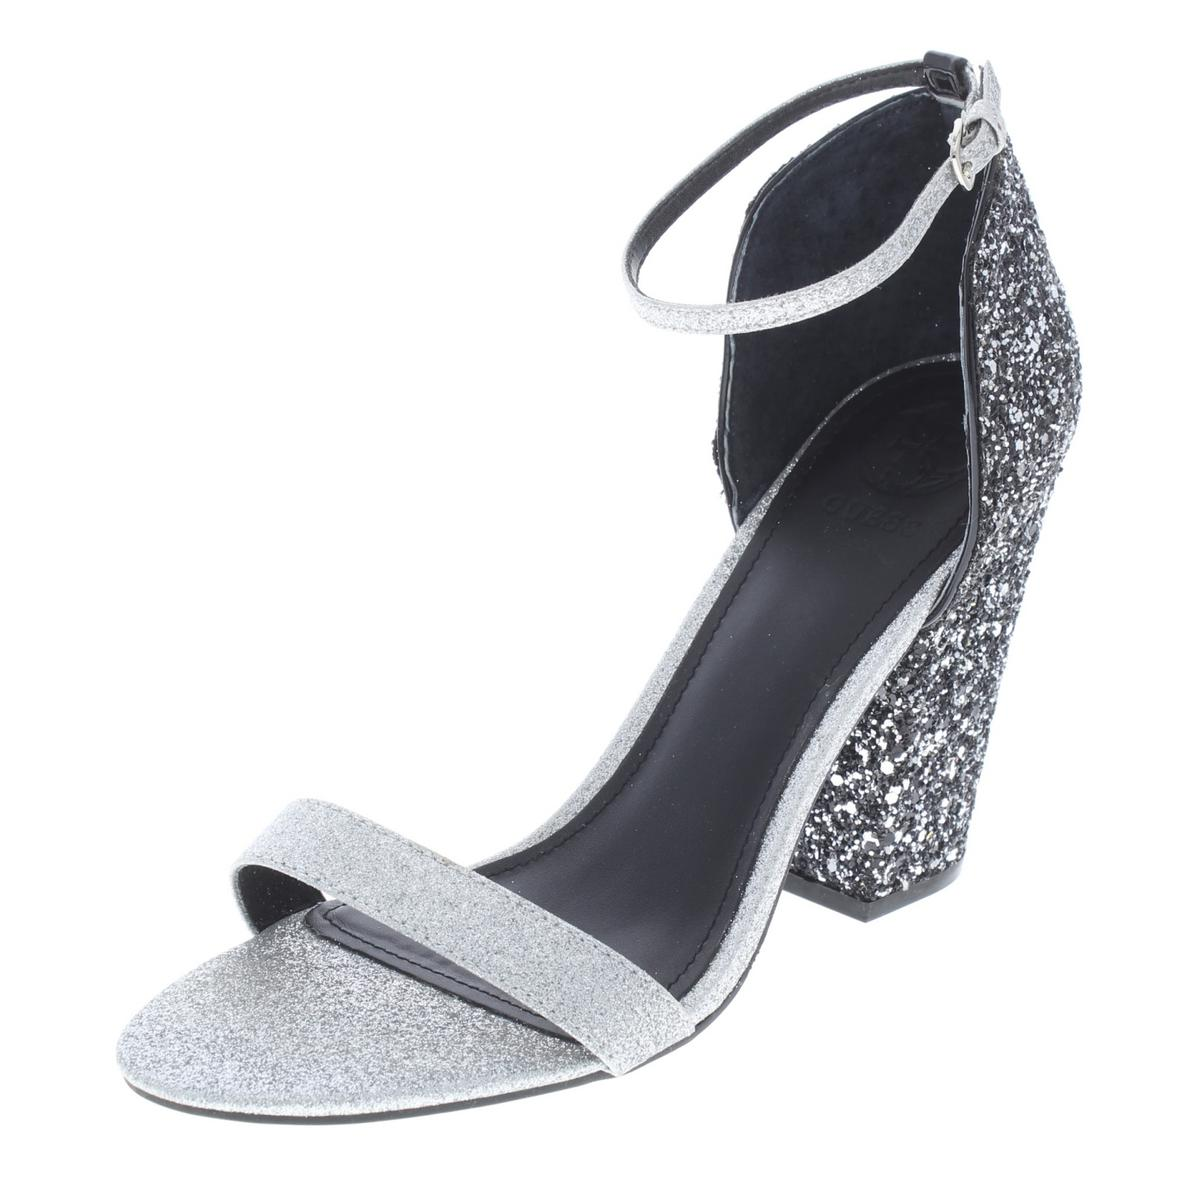 Guess Bam Damenschuhe Bam Bam Guess 3 Glitter Open Toe Block Heel Dress Sandales ... 85556d